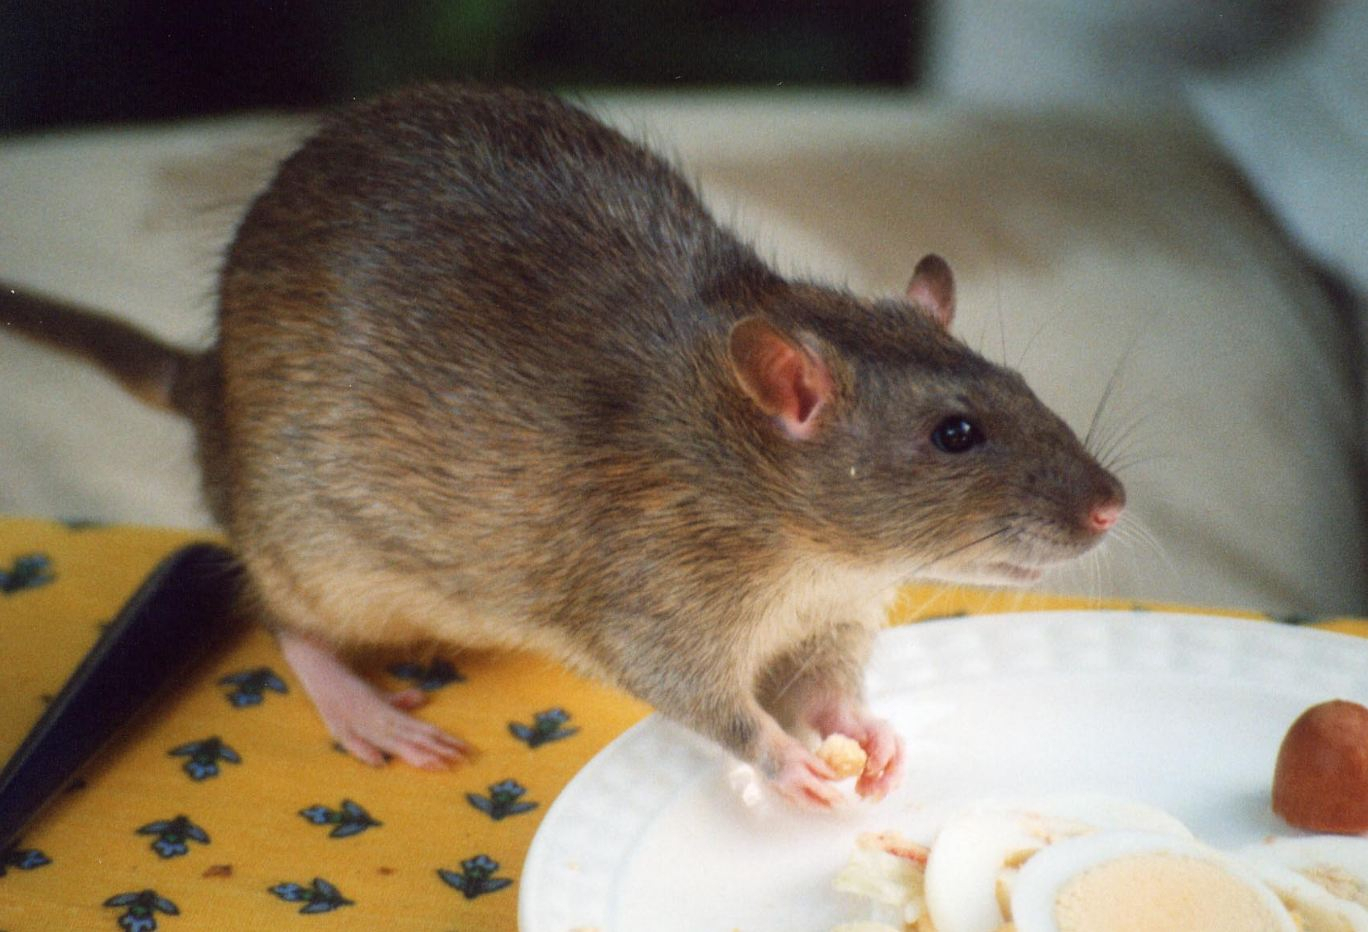 Hantavirus kills man in China amid COVID-19; What is the new threat?